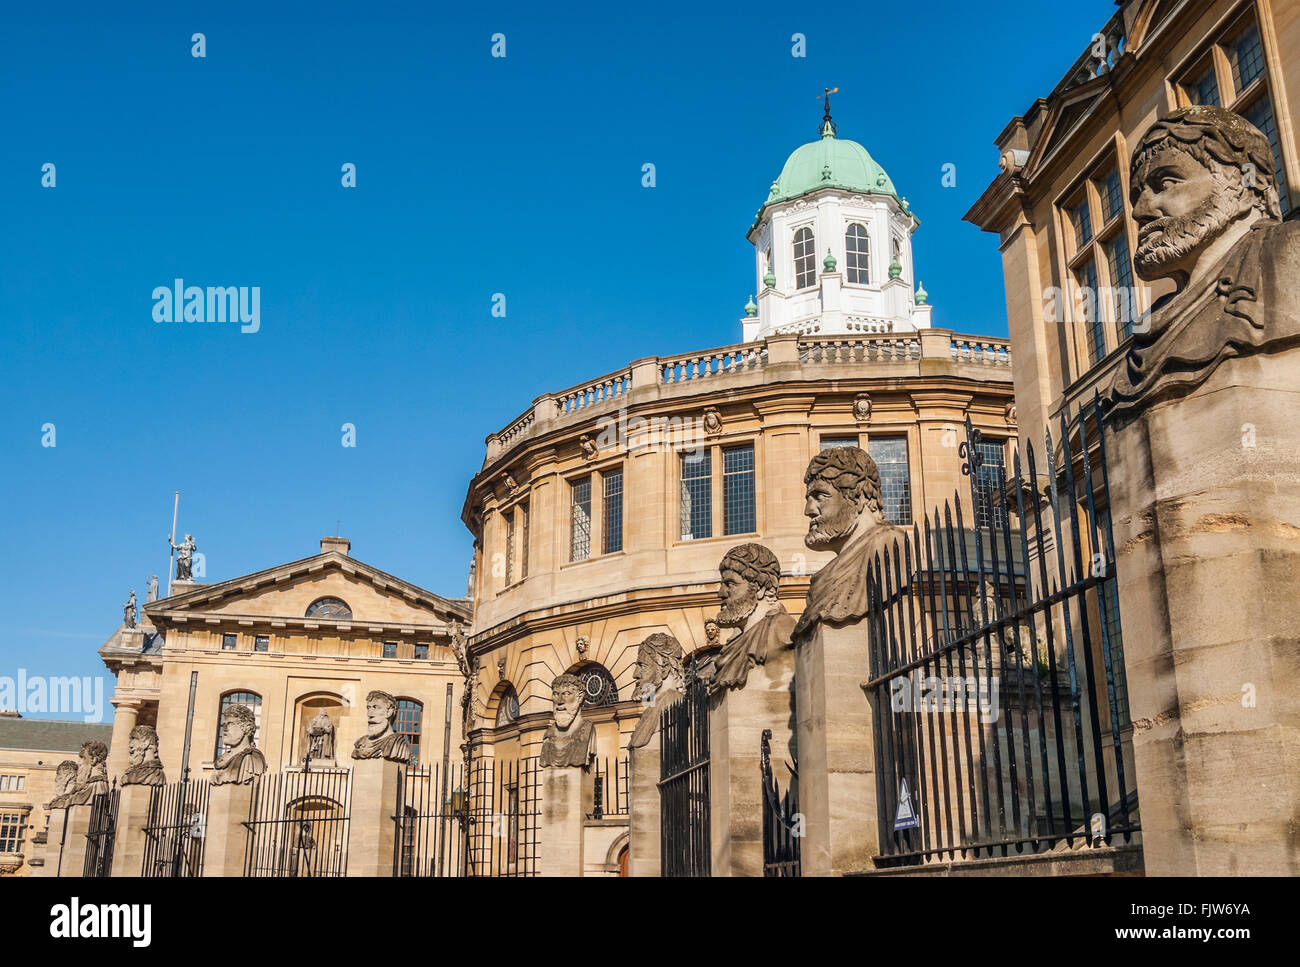 Sheldonian Theatre in Oxford, England, built from 1664 to 1668 for the University of Oxford, Oxfordshire, England Stock Photo